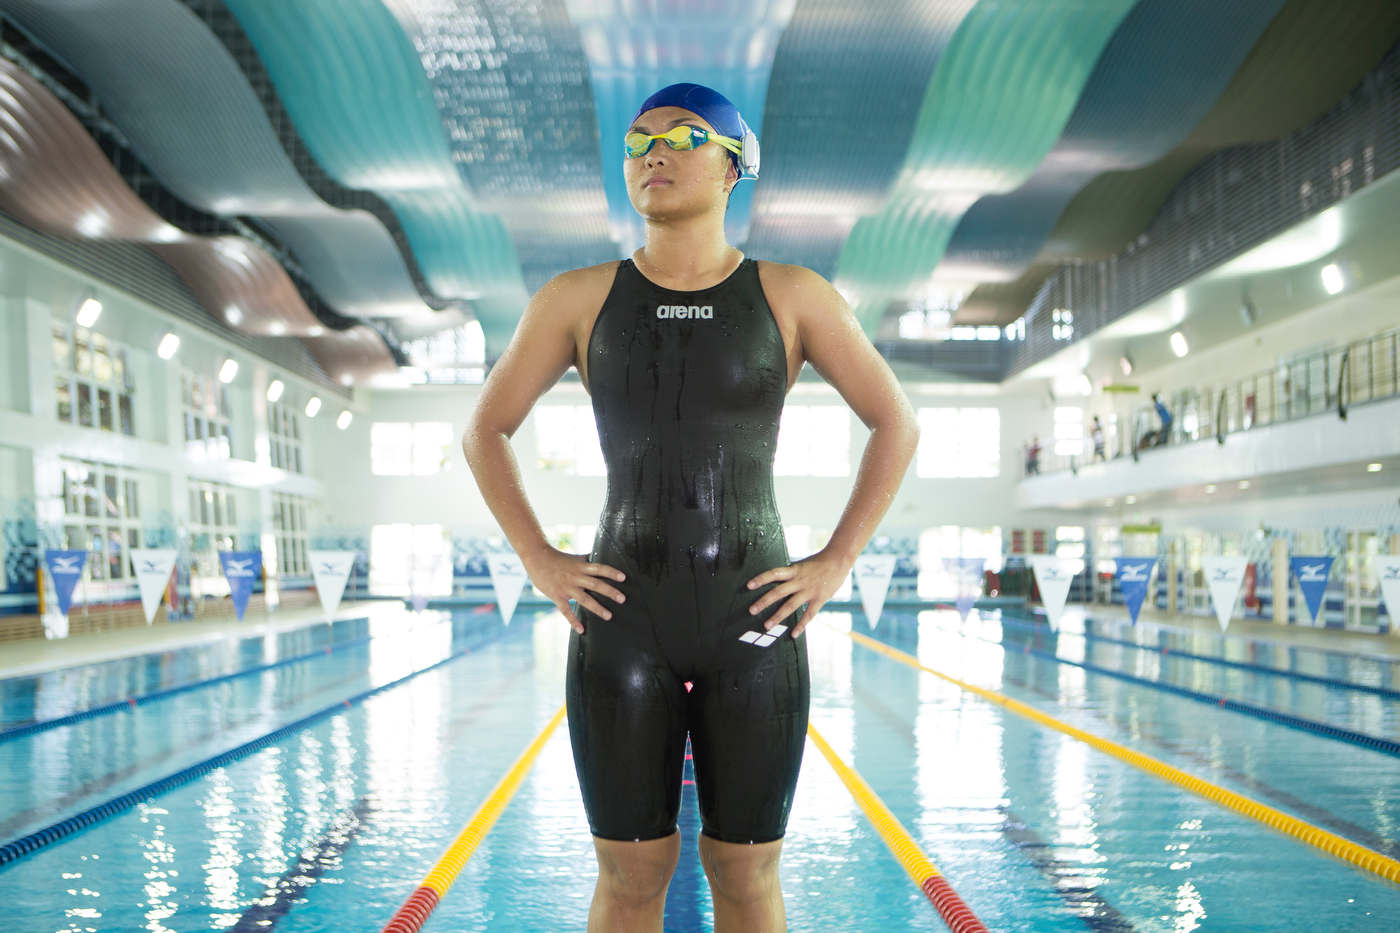 Swimmer and Cochlear implant recipient,Taipei, Taiwan, for Advanced Bionics.